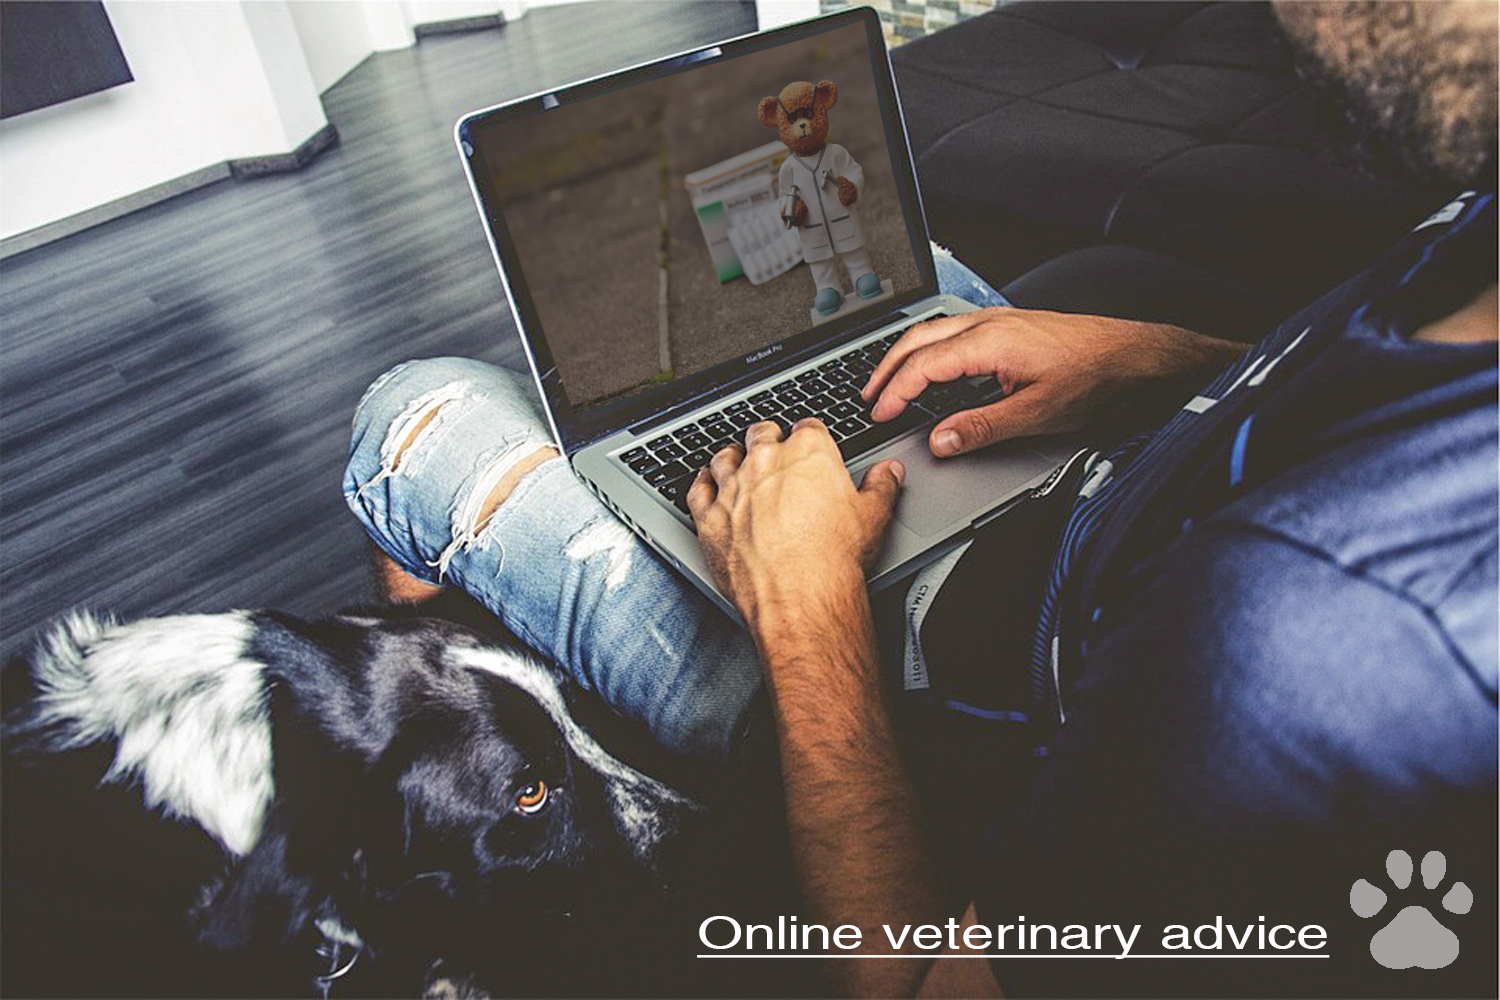 online veterinary advice